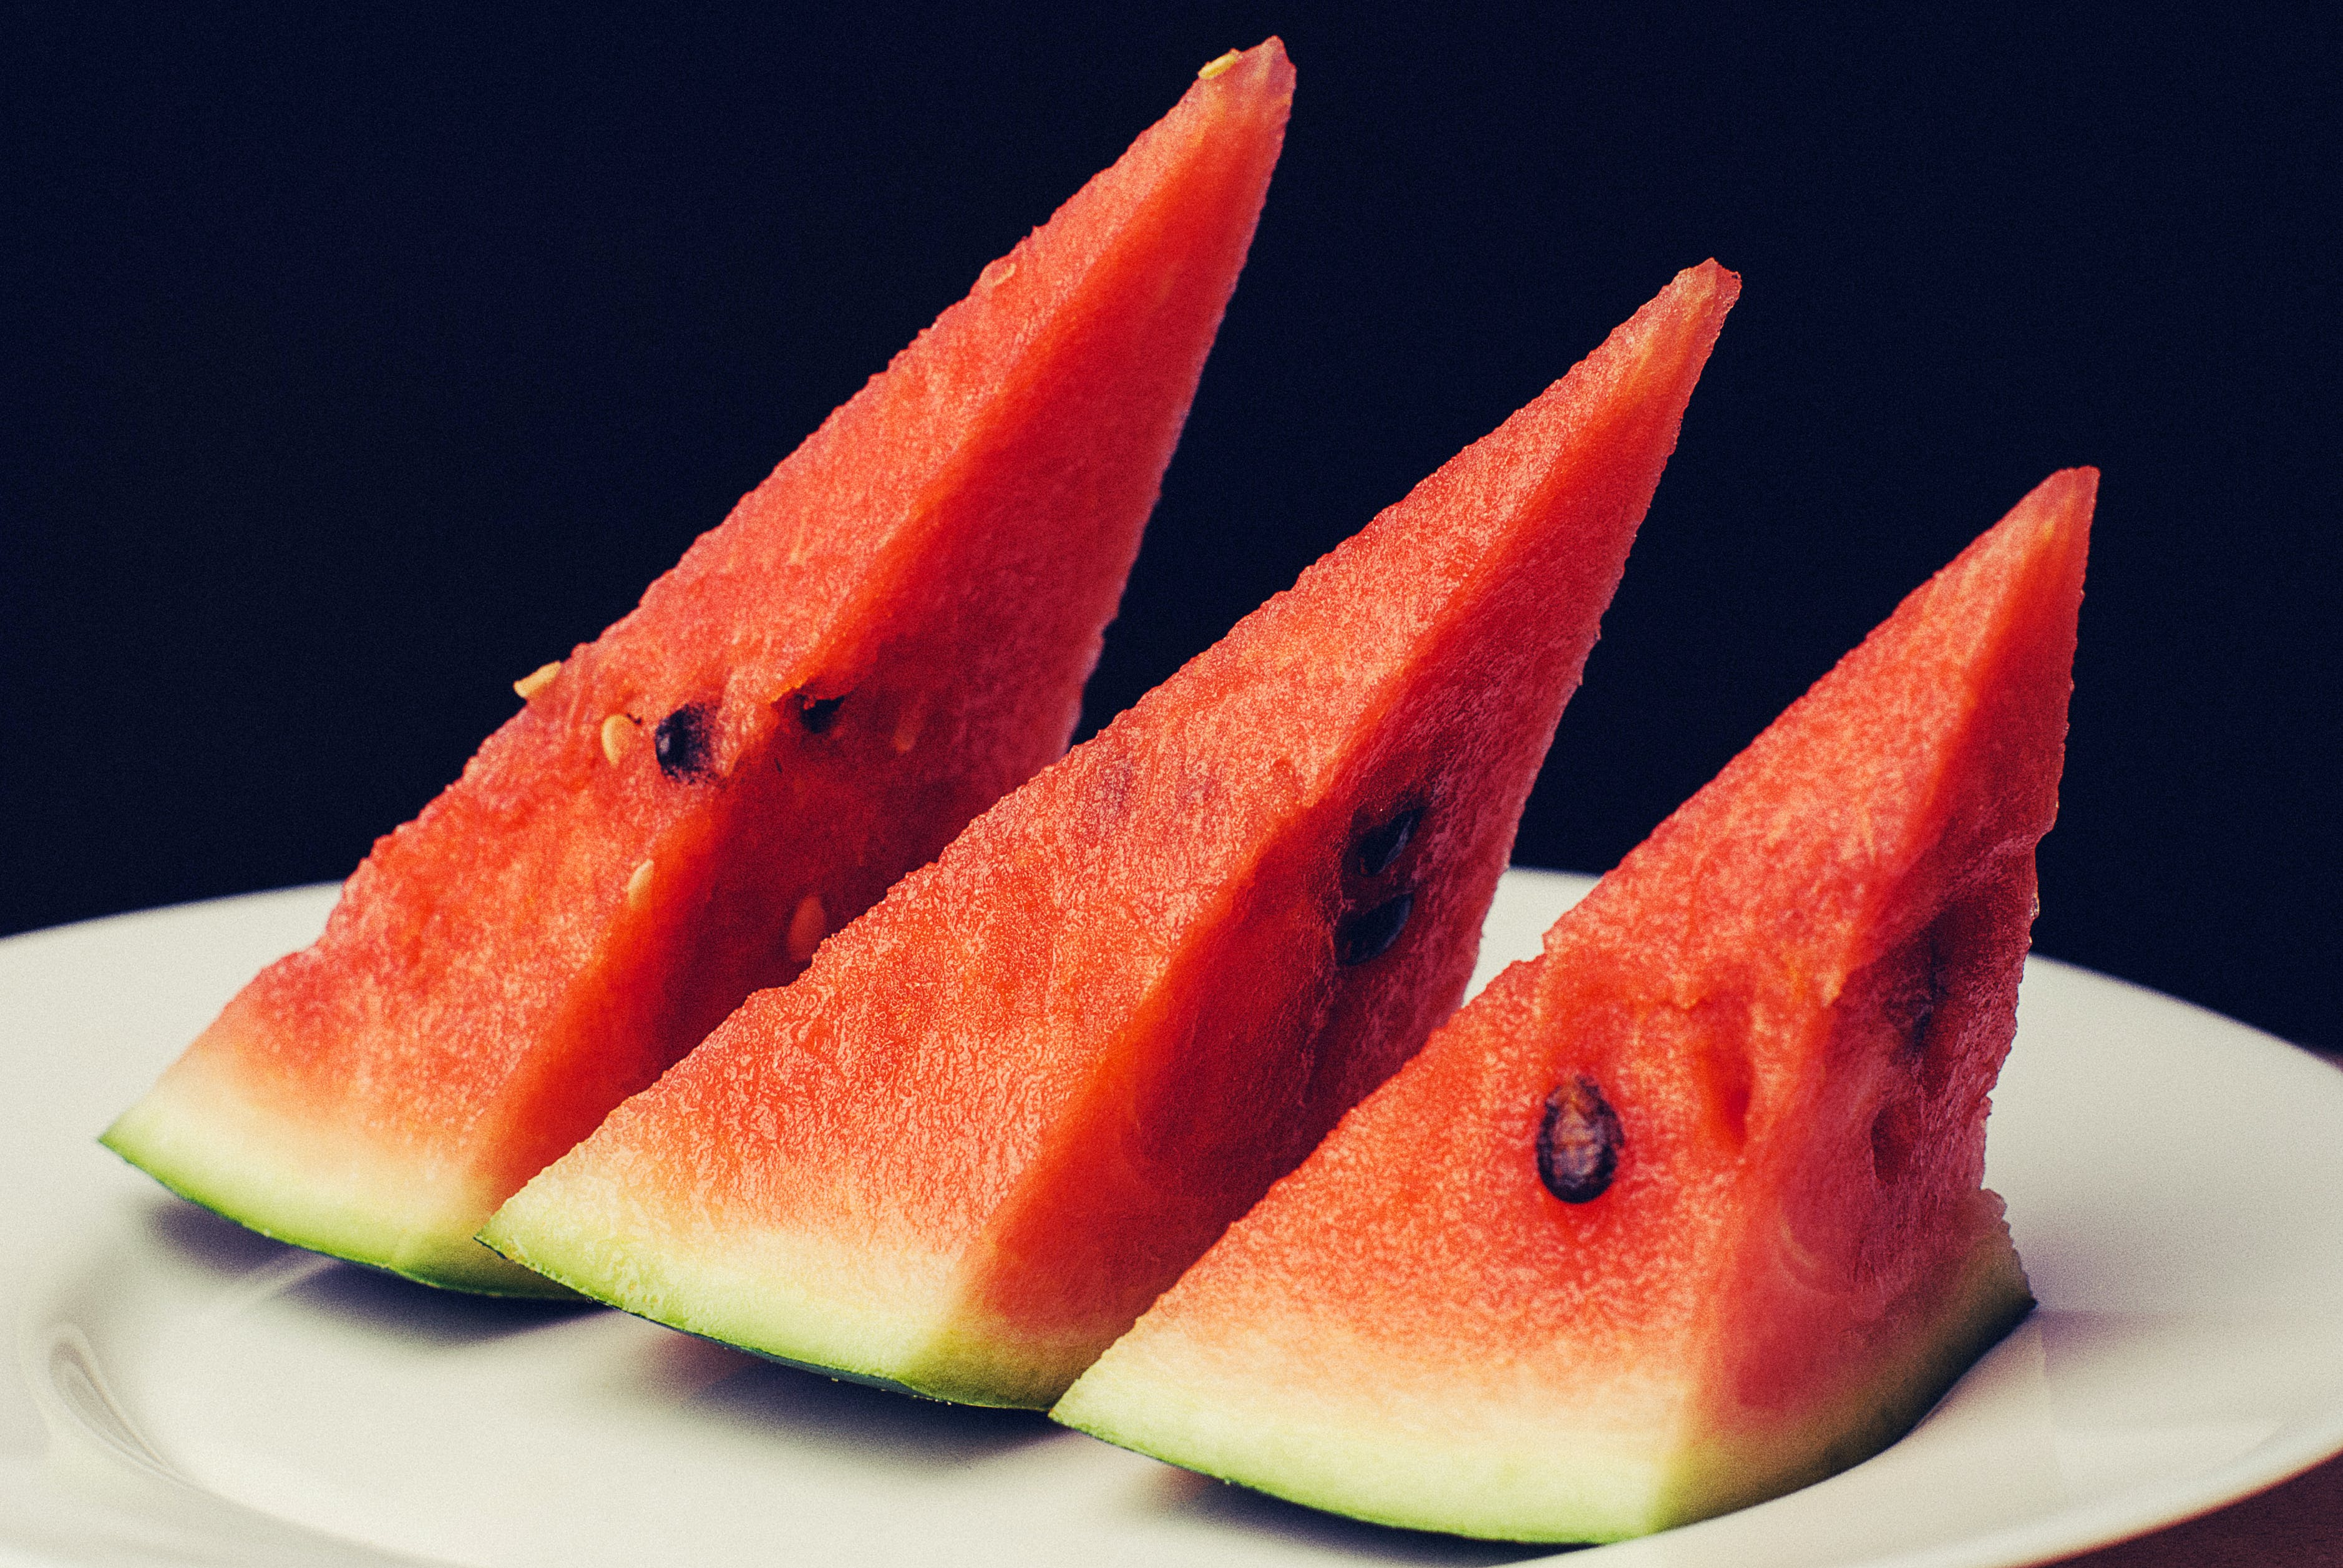 Three Slices of Watermelon on Round White Ceramic Plate